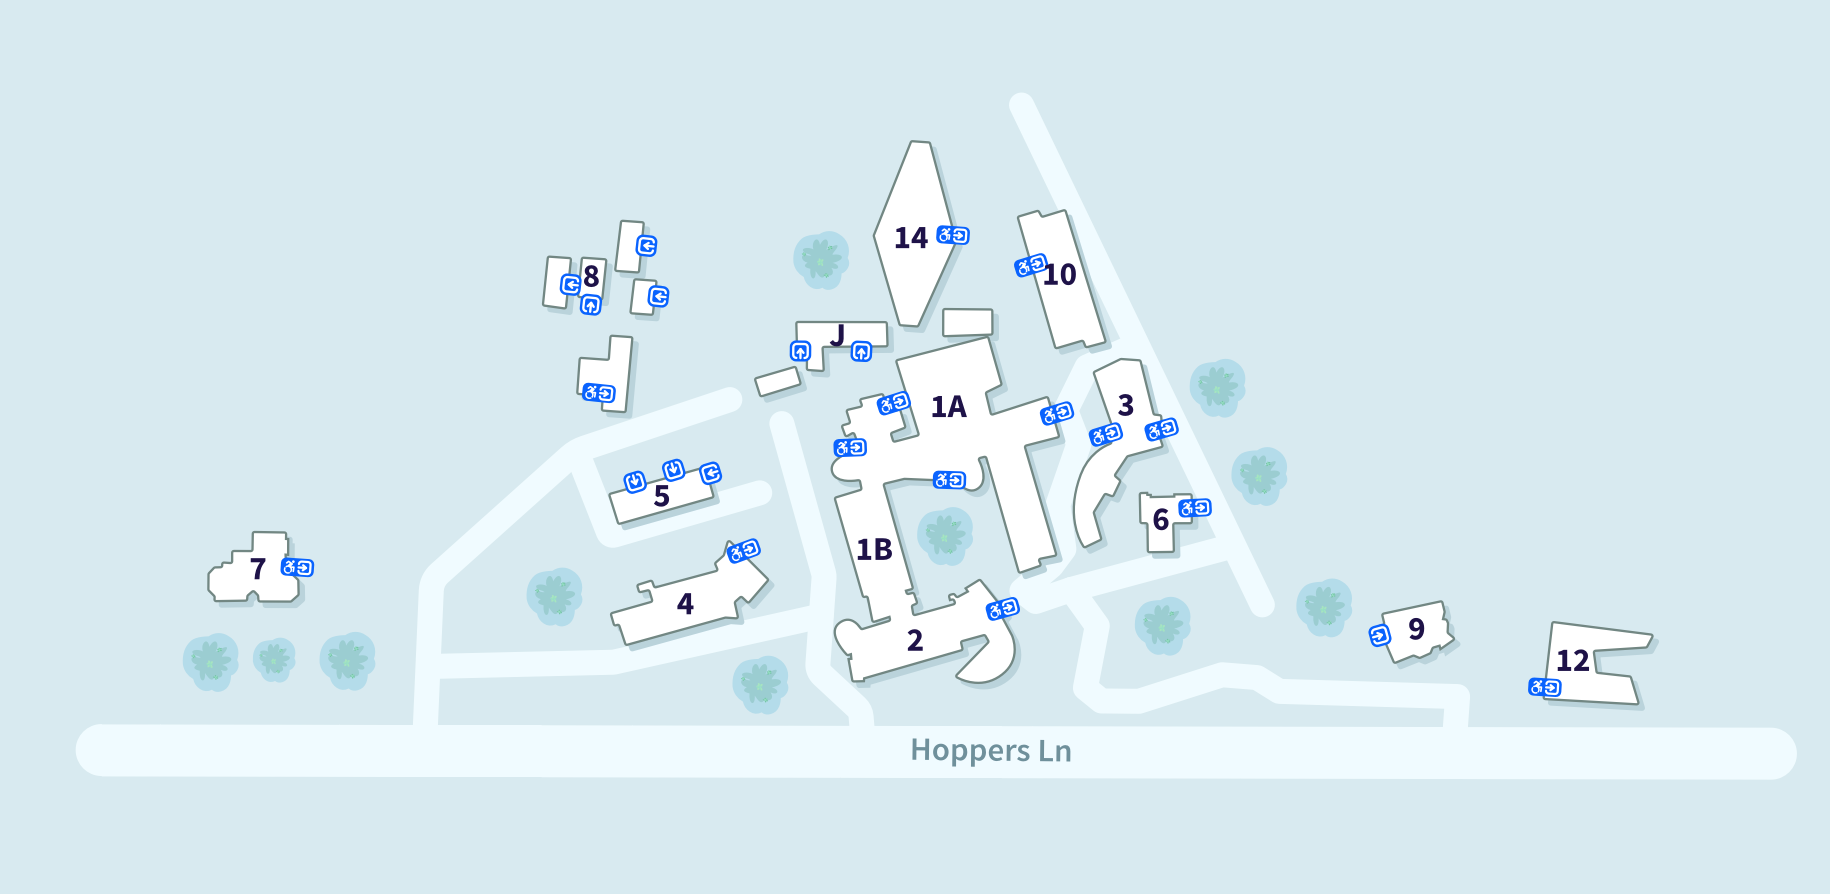 VU Werribee Campus map showing the following buildings and their accessible entrances, from L-R: 7, 8, 5, 4, J, 14, 1B, 2, 1A, 10, 3, 6, 9, 12. Buildings 8, 5, J and 9 have no accessible entrances shown.